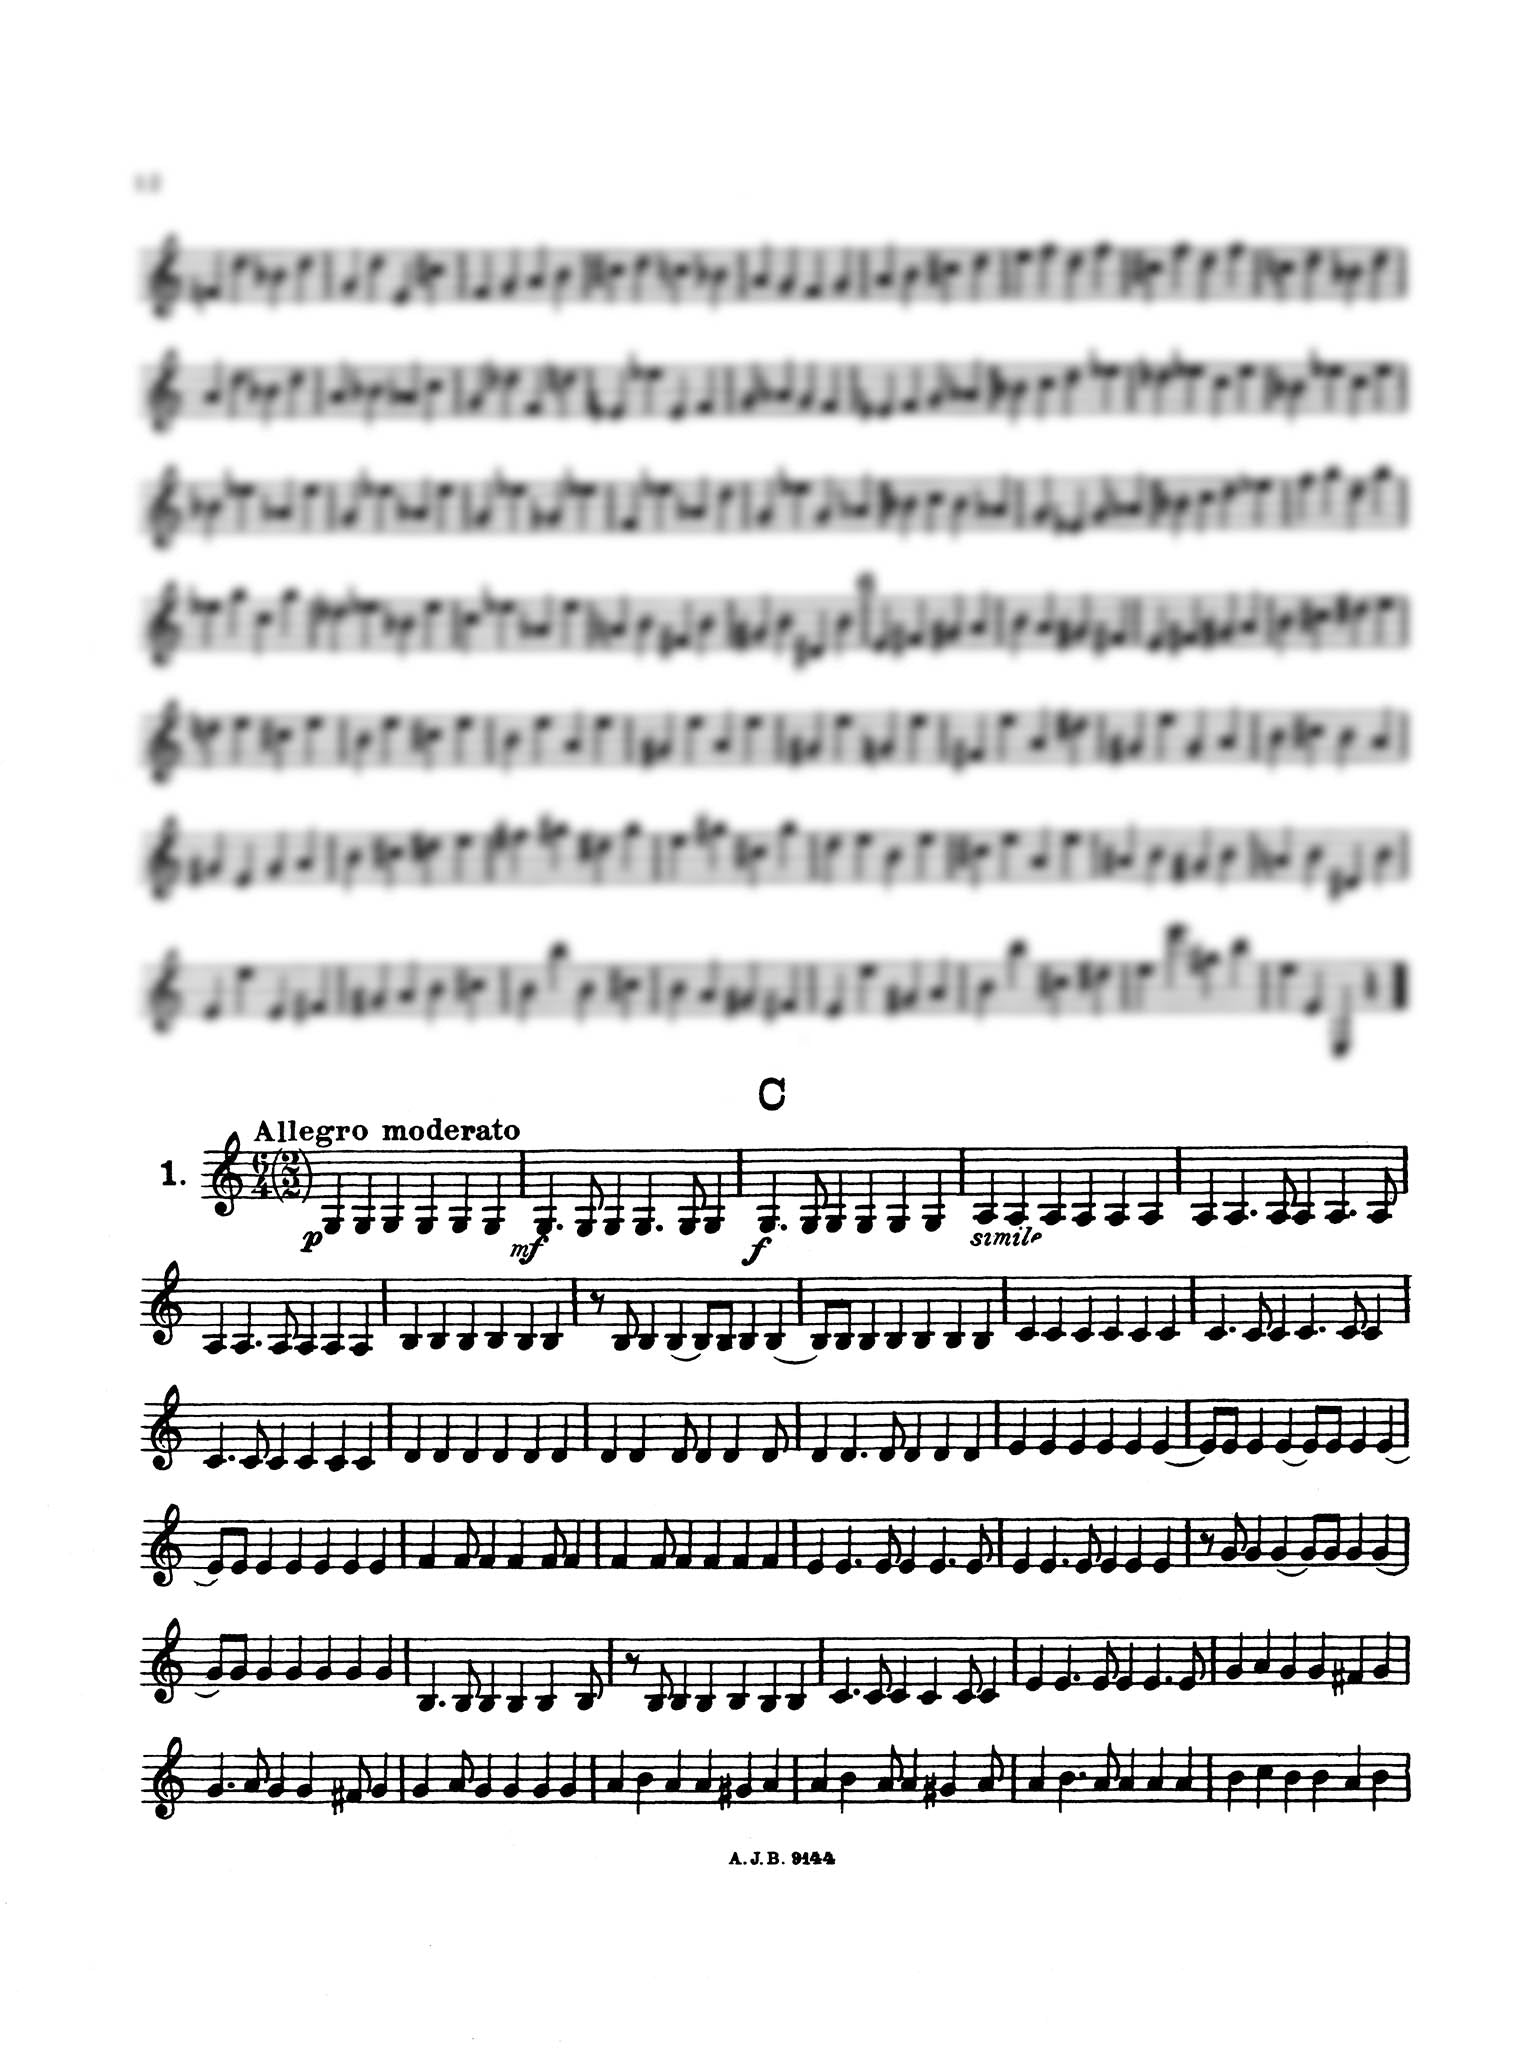 Practical Staccato School for Clarinet, Book 1 Page 12